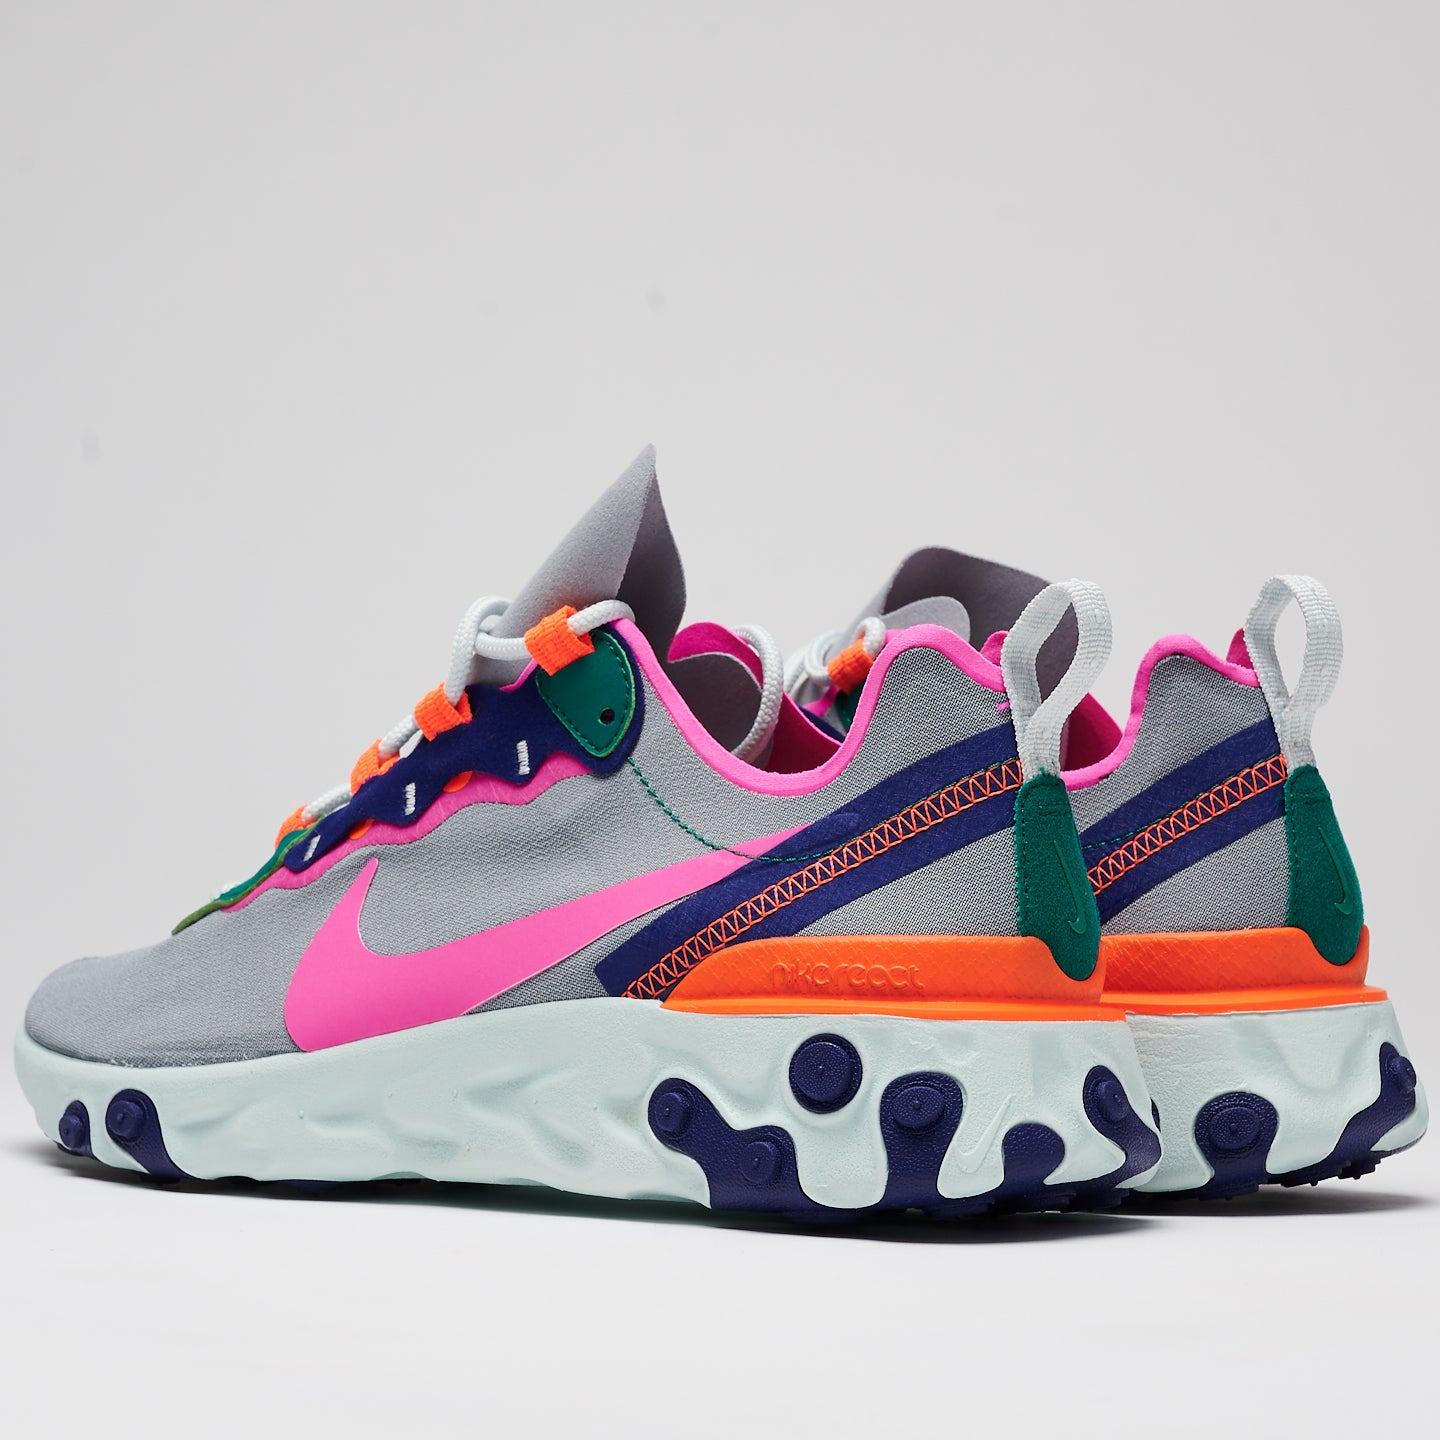 NIKE REACT ELEMENT 55 - WOLFE GREY/LASER FUCHSIA